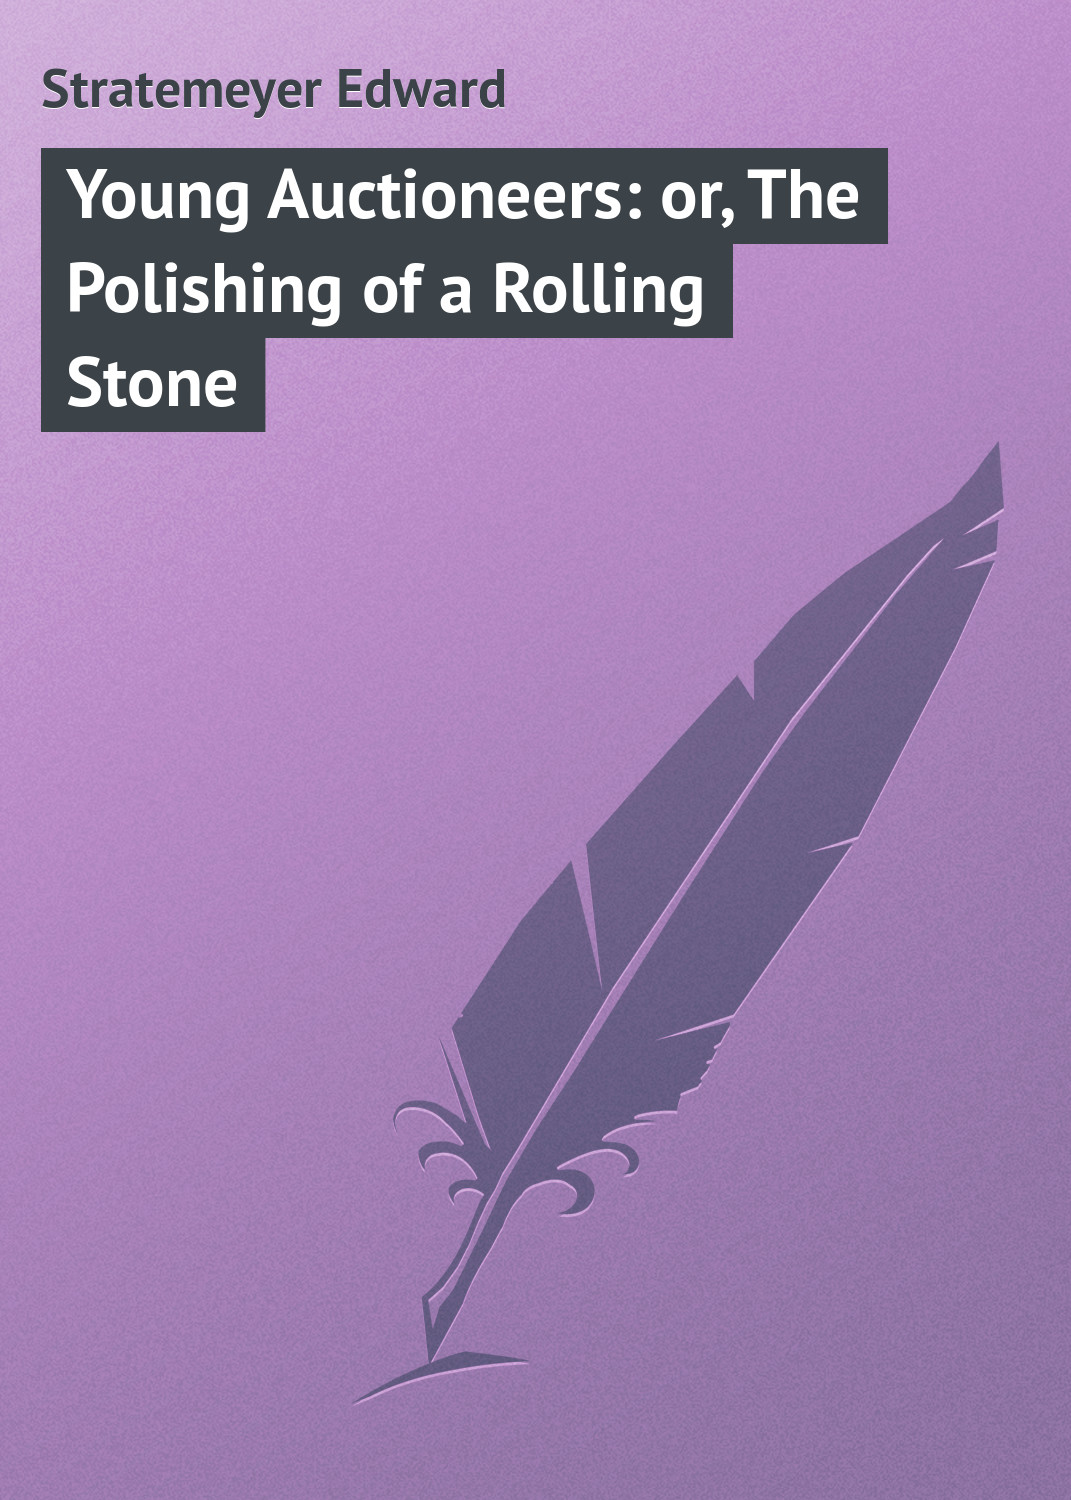 лучшая цена Stratemeyer Edward Young Auctioneers: or, The Polishing of a Rolling Stone